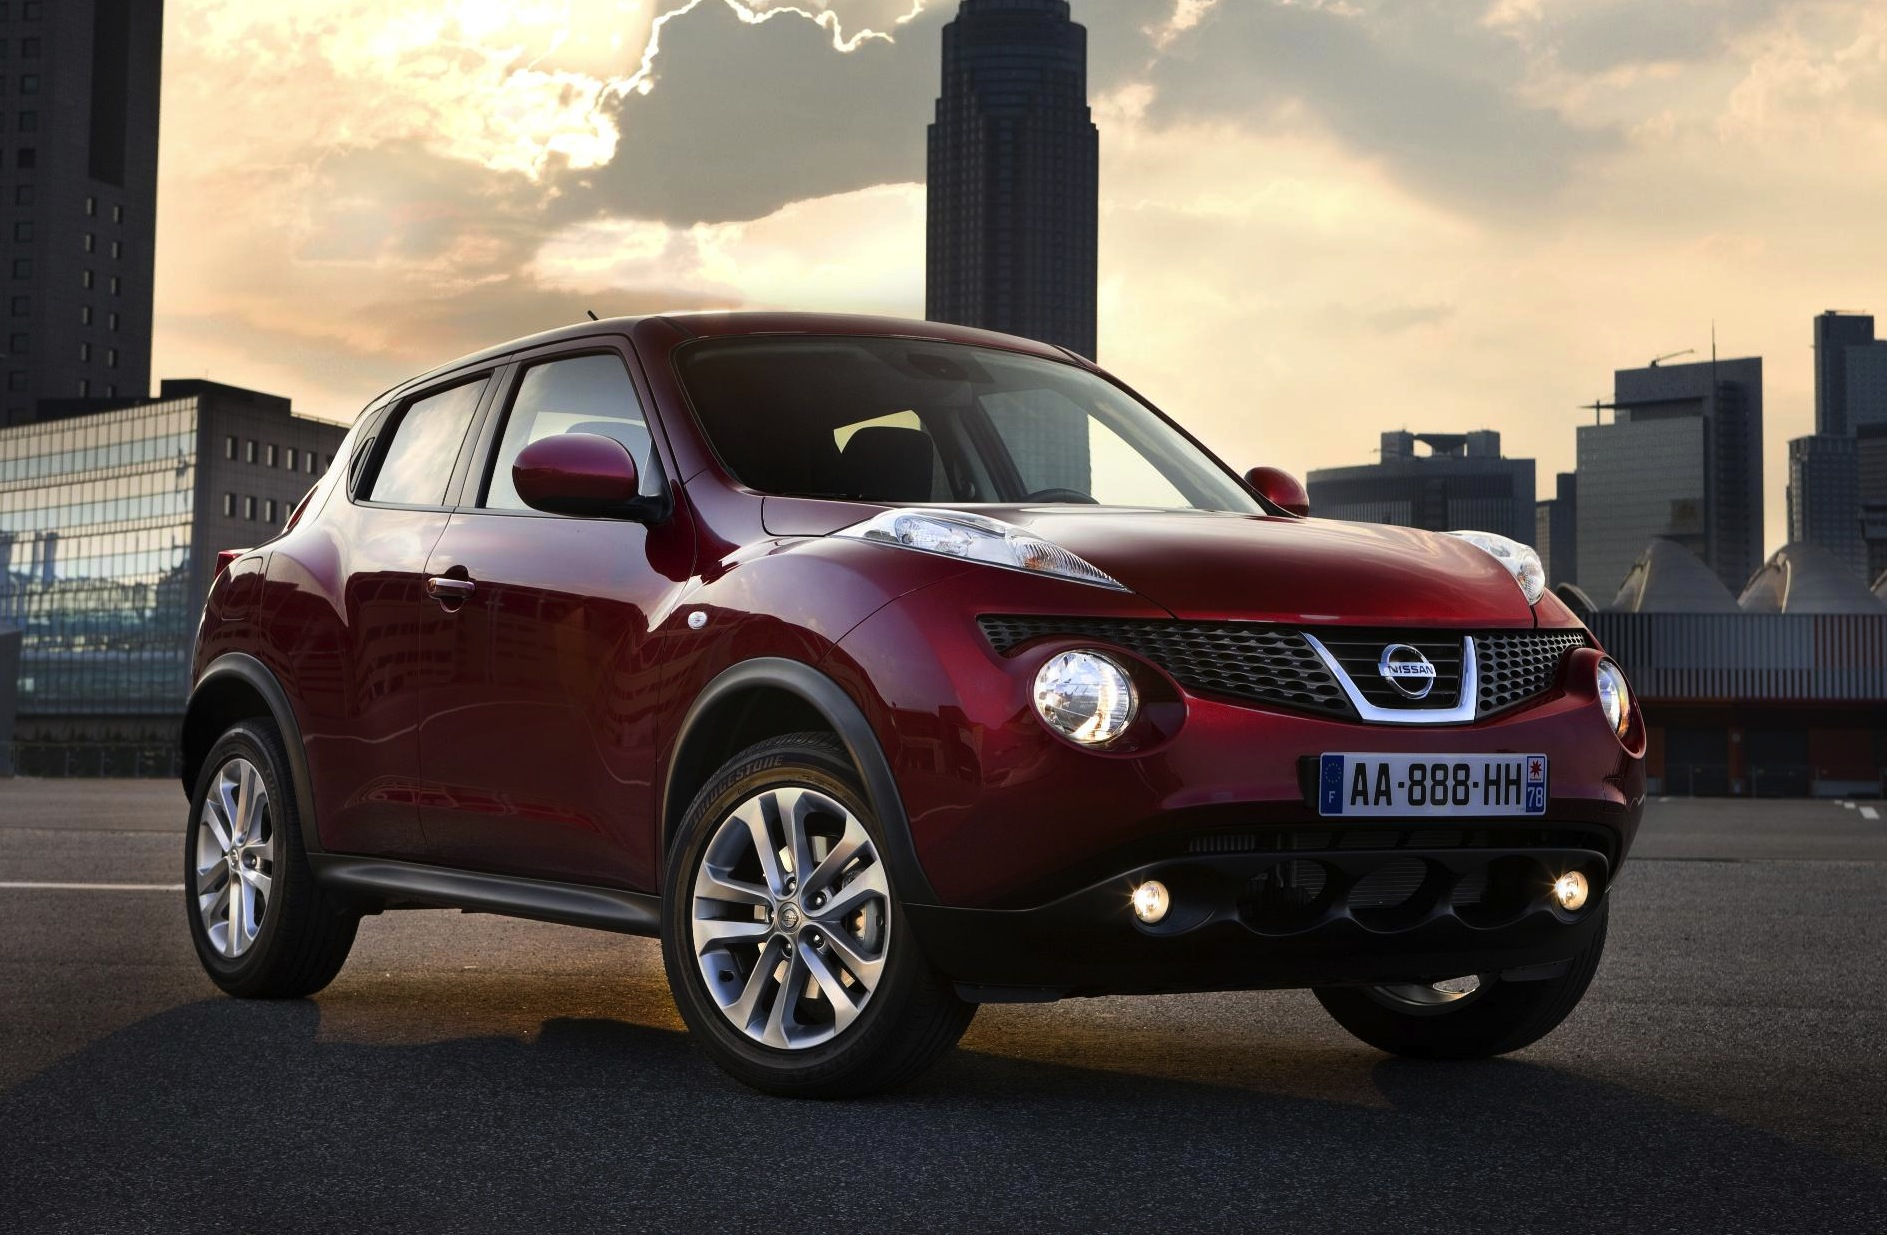 Nissan Juke crossover confirmed for Australia - photos | CarAdvice